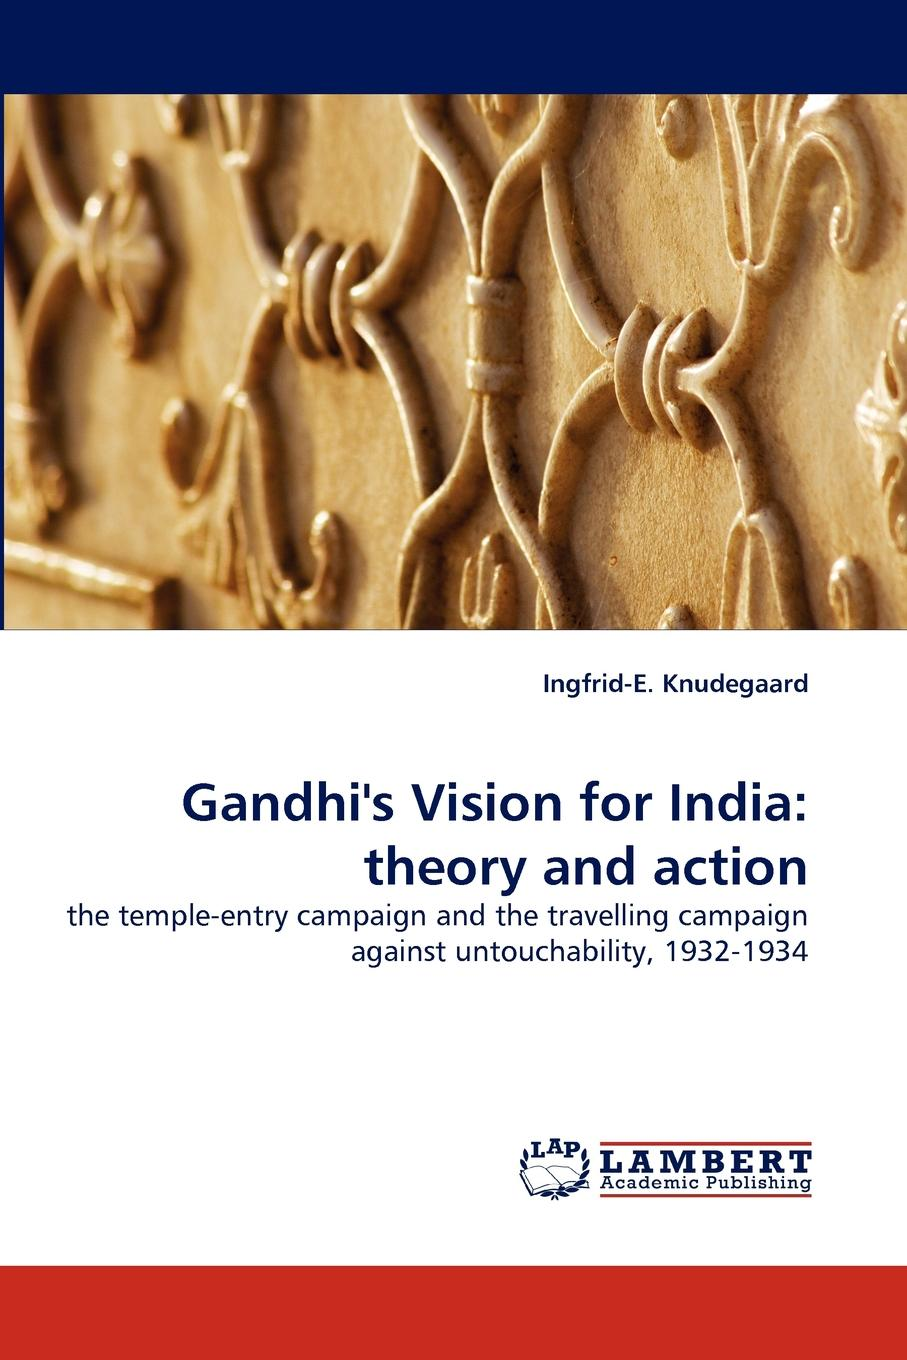 Ingfrid-E Knudegaard Gandhi.s Vision for India. Theory and Action mahatma gandhi speeches and writings of m k gandhi